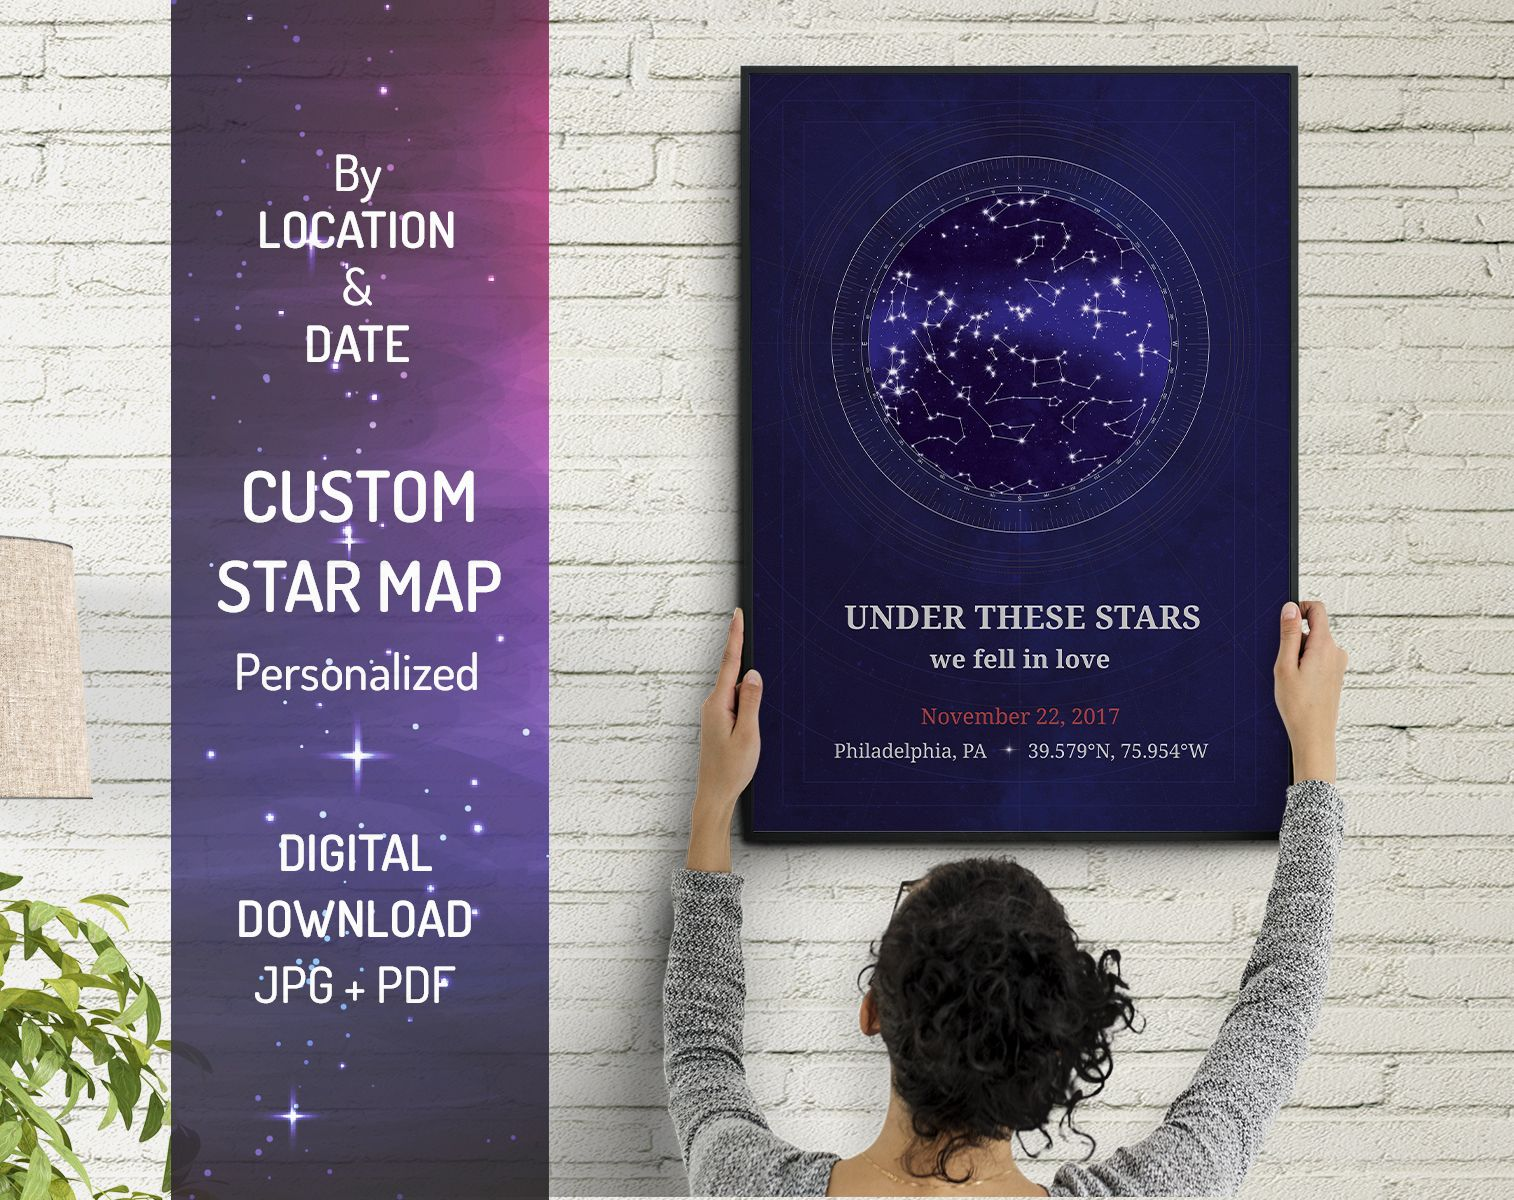 Custom Star Map by Date and Coordinates as Anniversary Gift